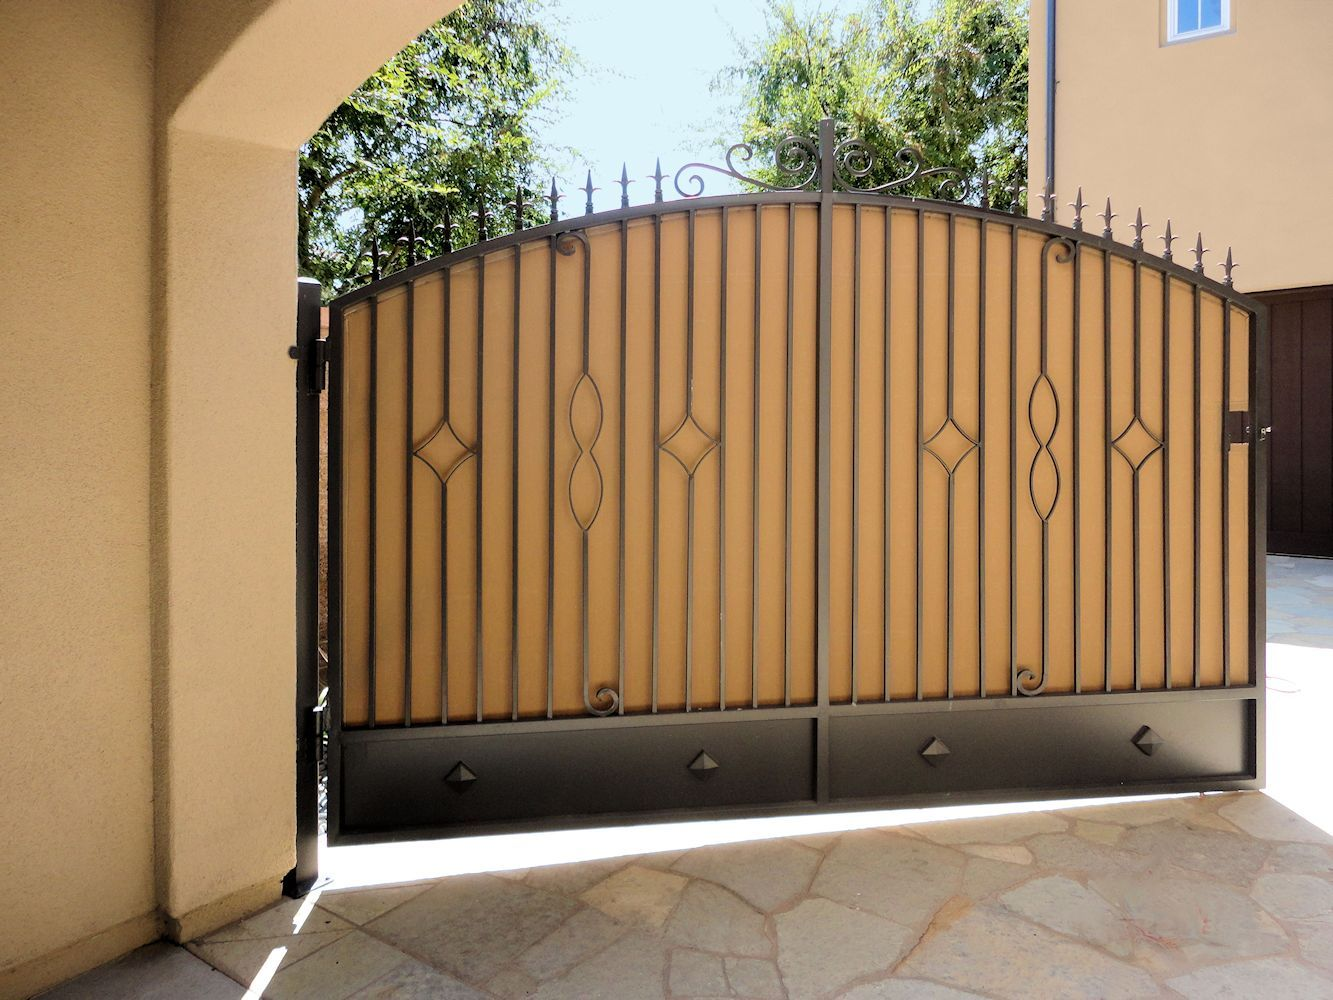 Fence Covers Gate Covers Privacy Panels By Superior Awning Residential Awnings Custom Awnings Gate